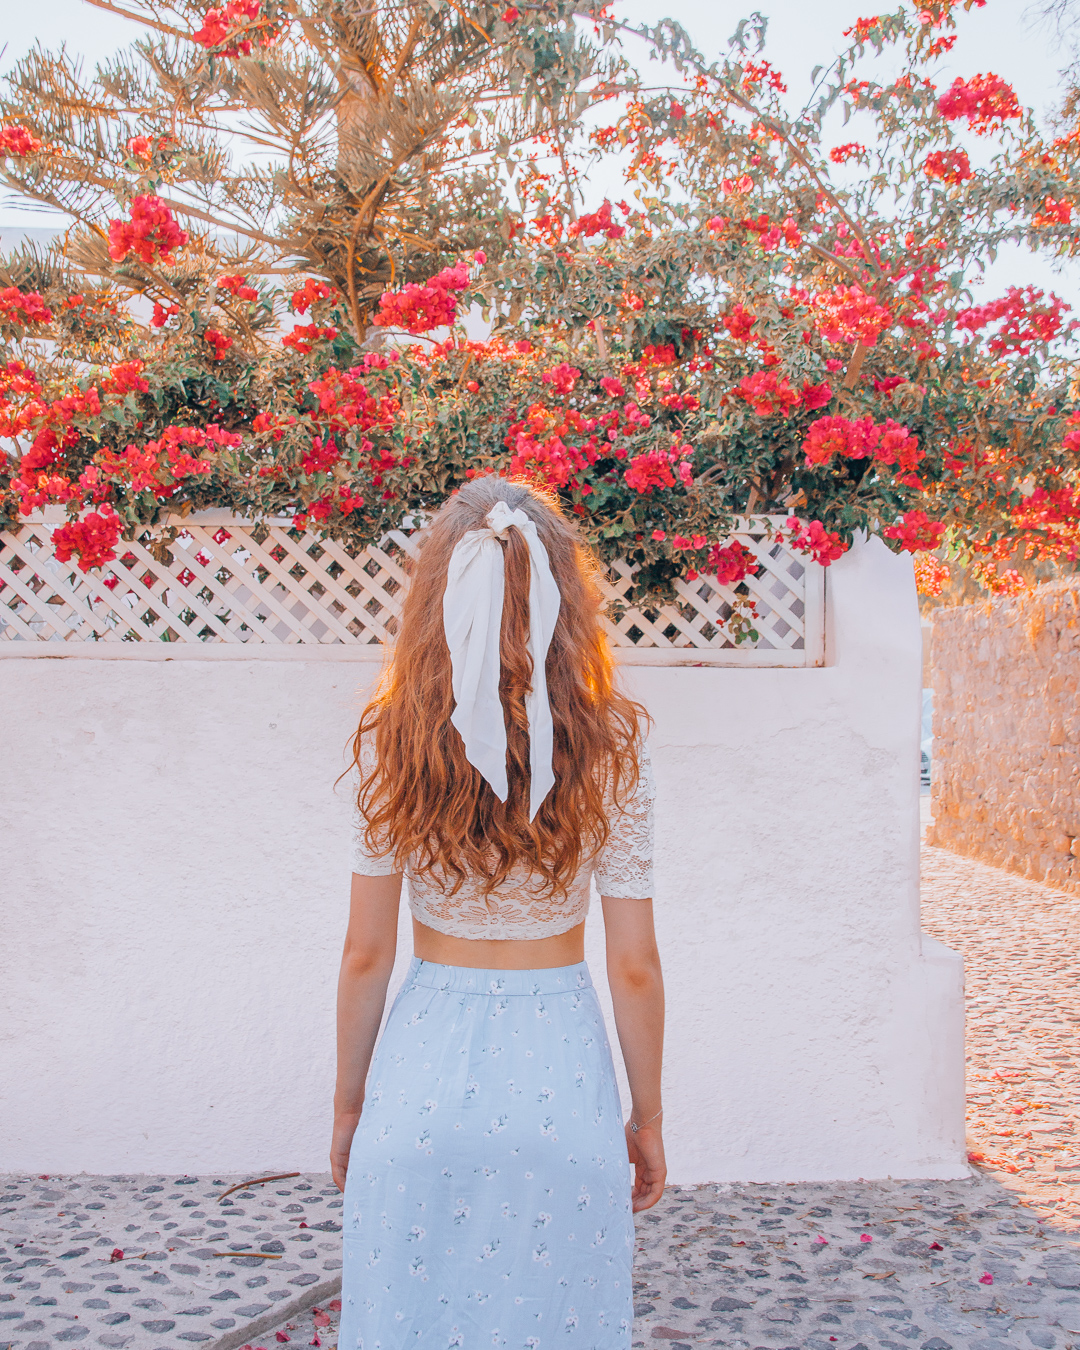 Girl and wall with red flowers in Santorini